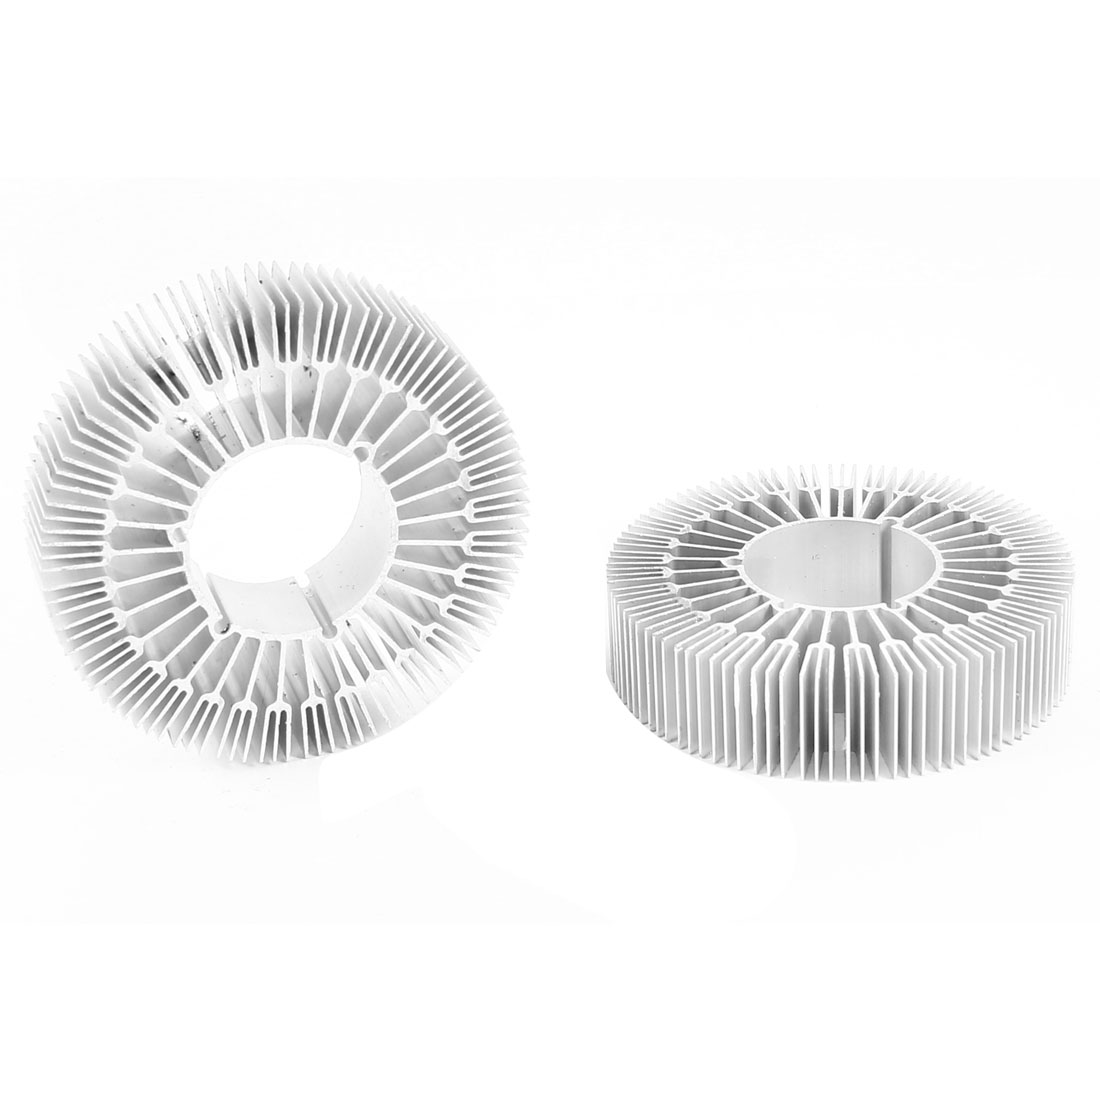 2 Pieces Round Shape 80mm OD 33mm ID 20mm Height LED Light Heatsinks Cooling Fin